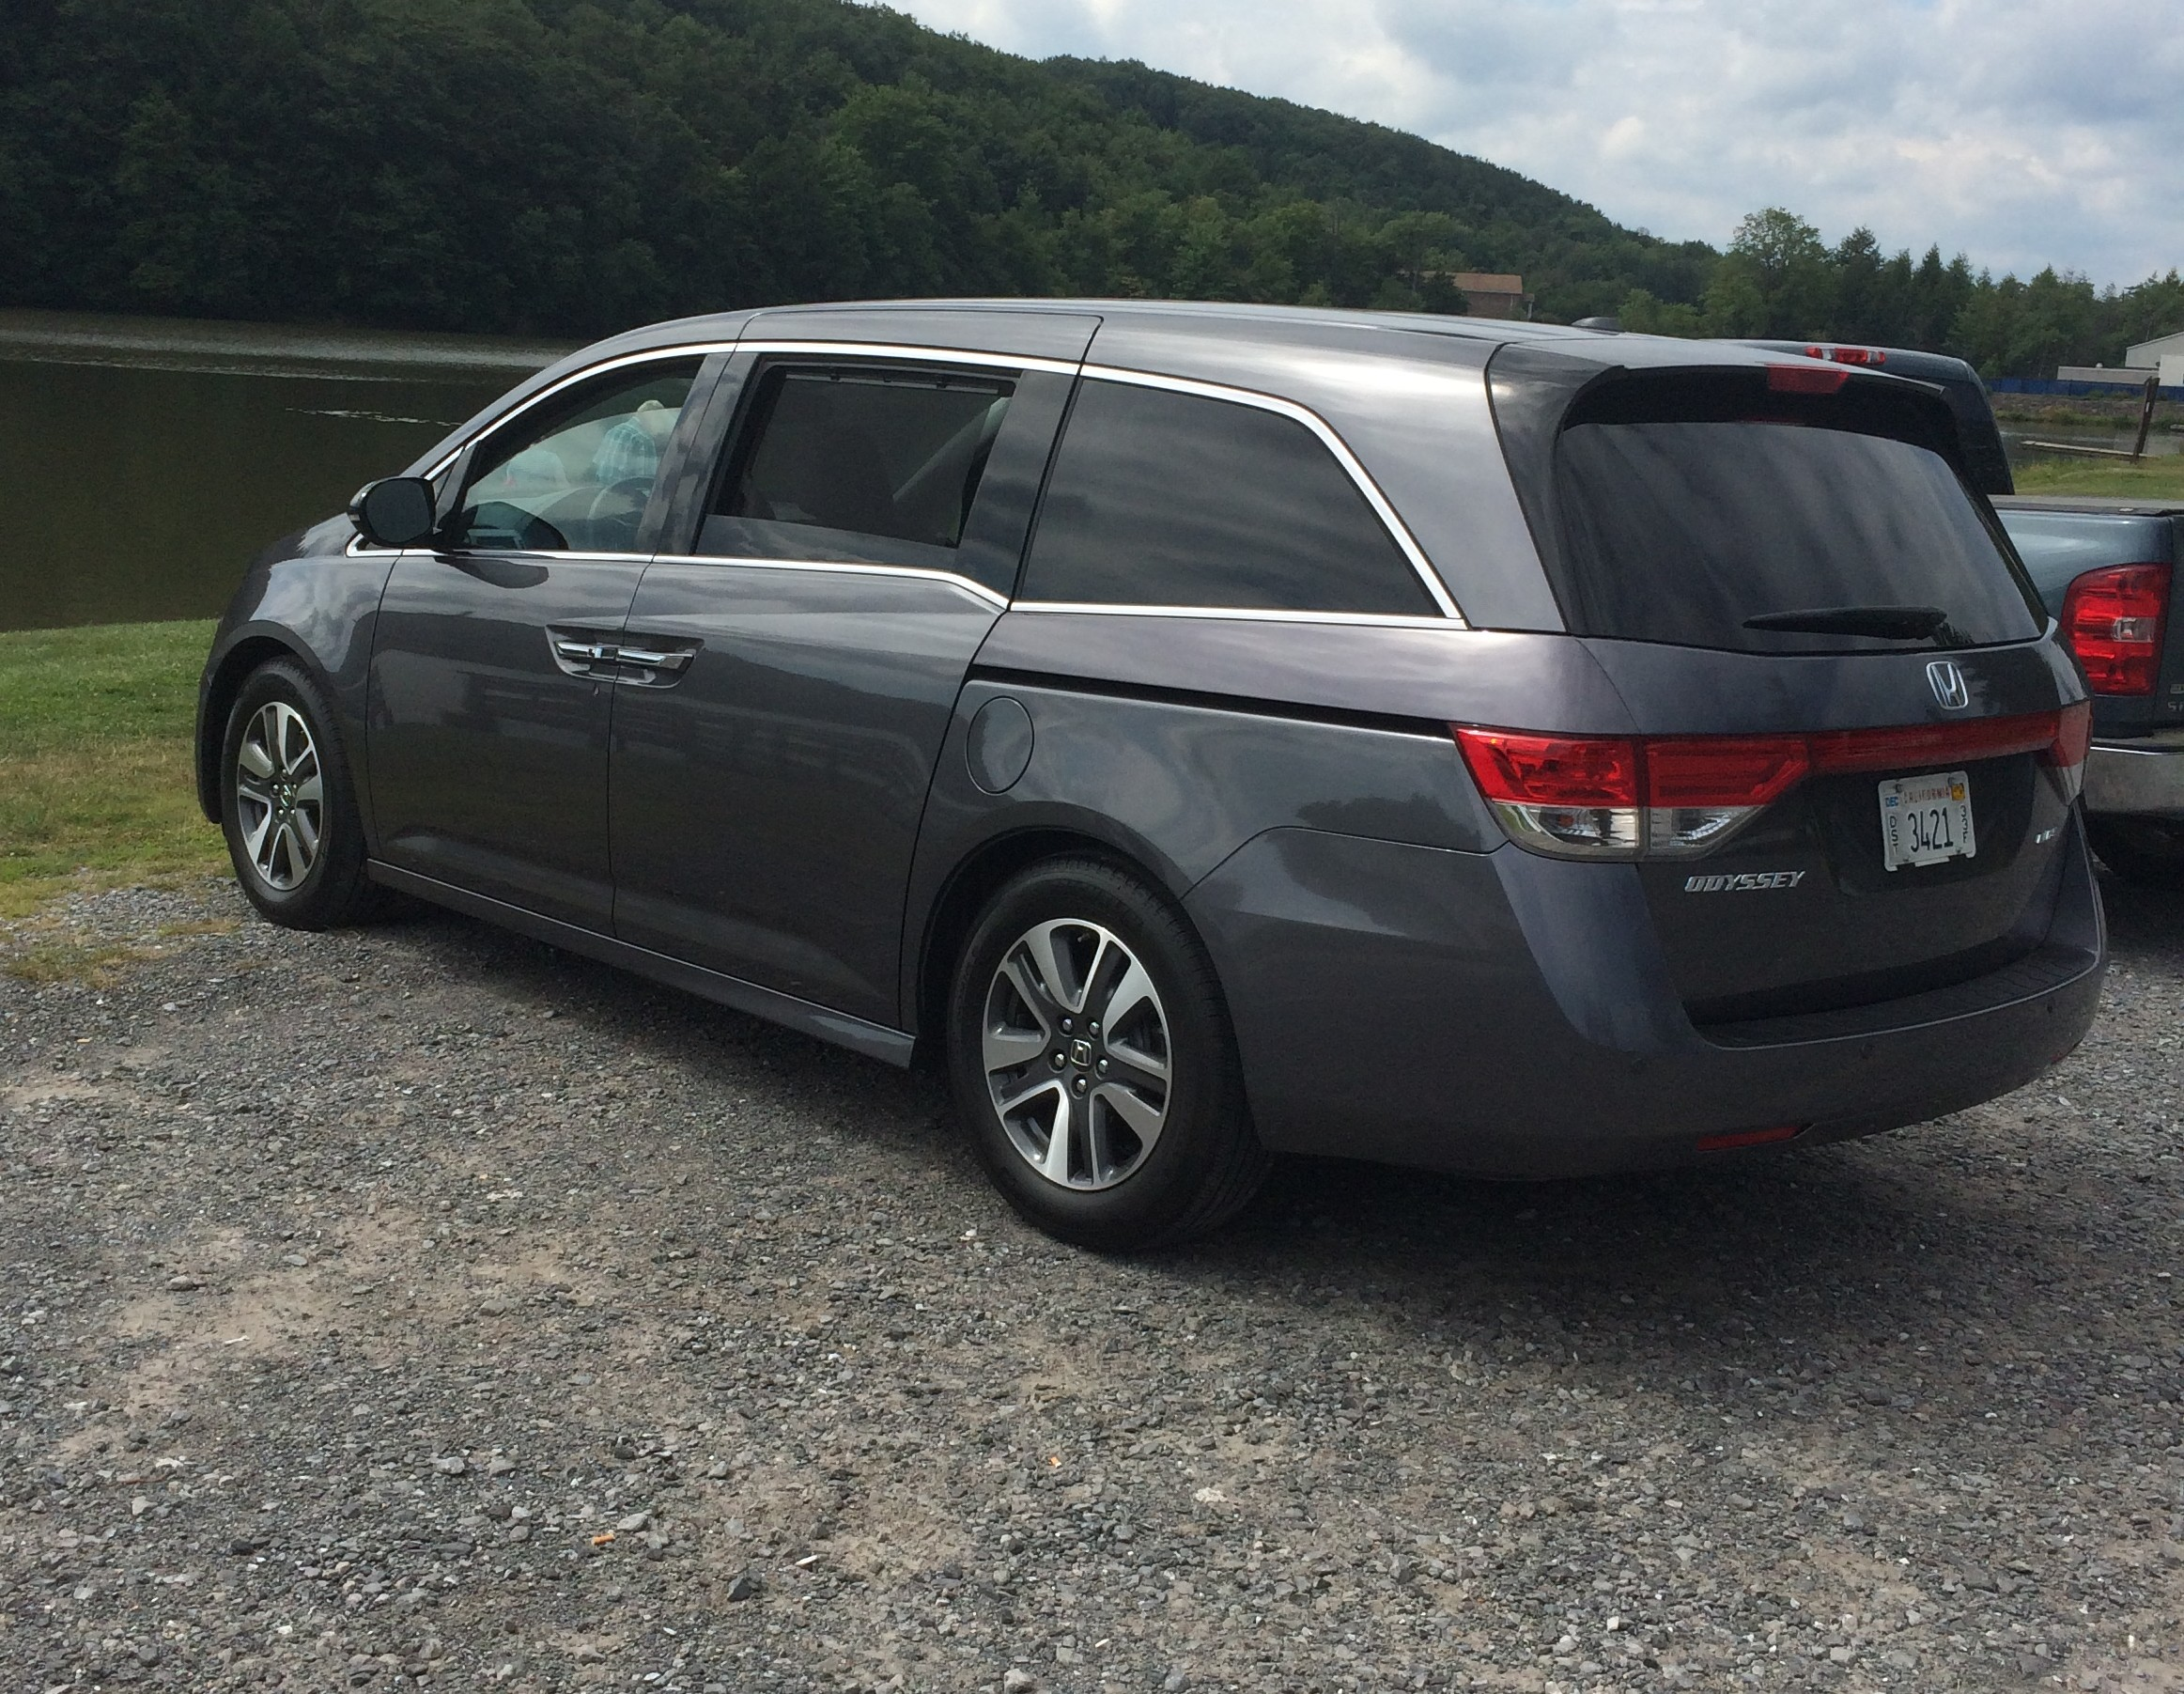 Honda Odyssey Touring Elite: A comfortable people mover